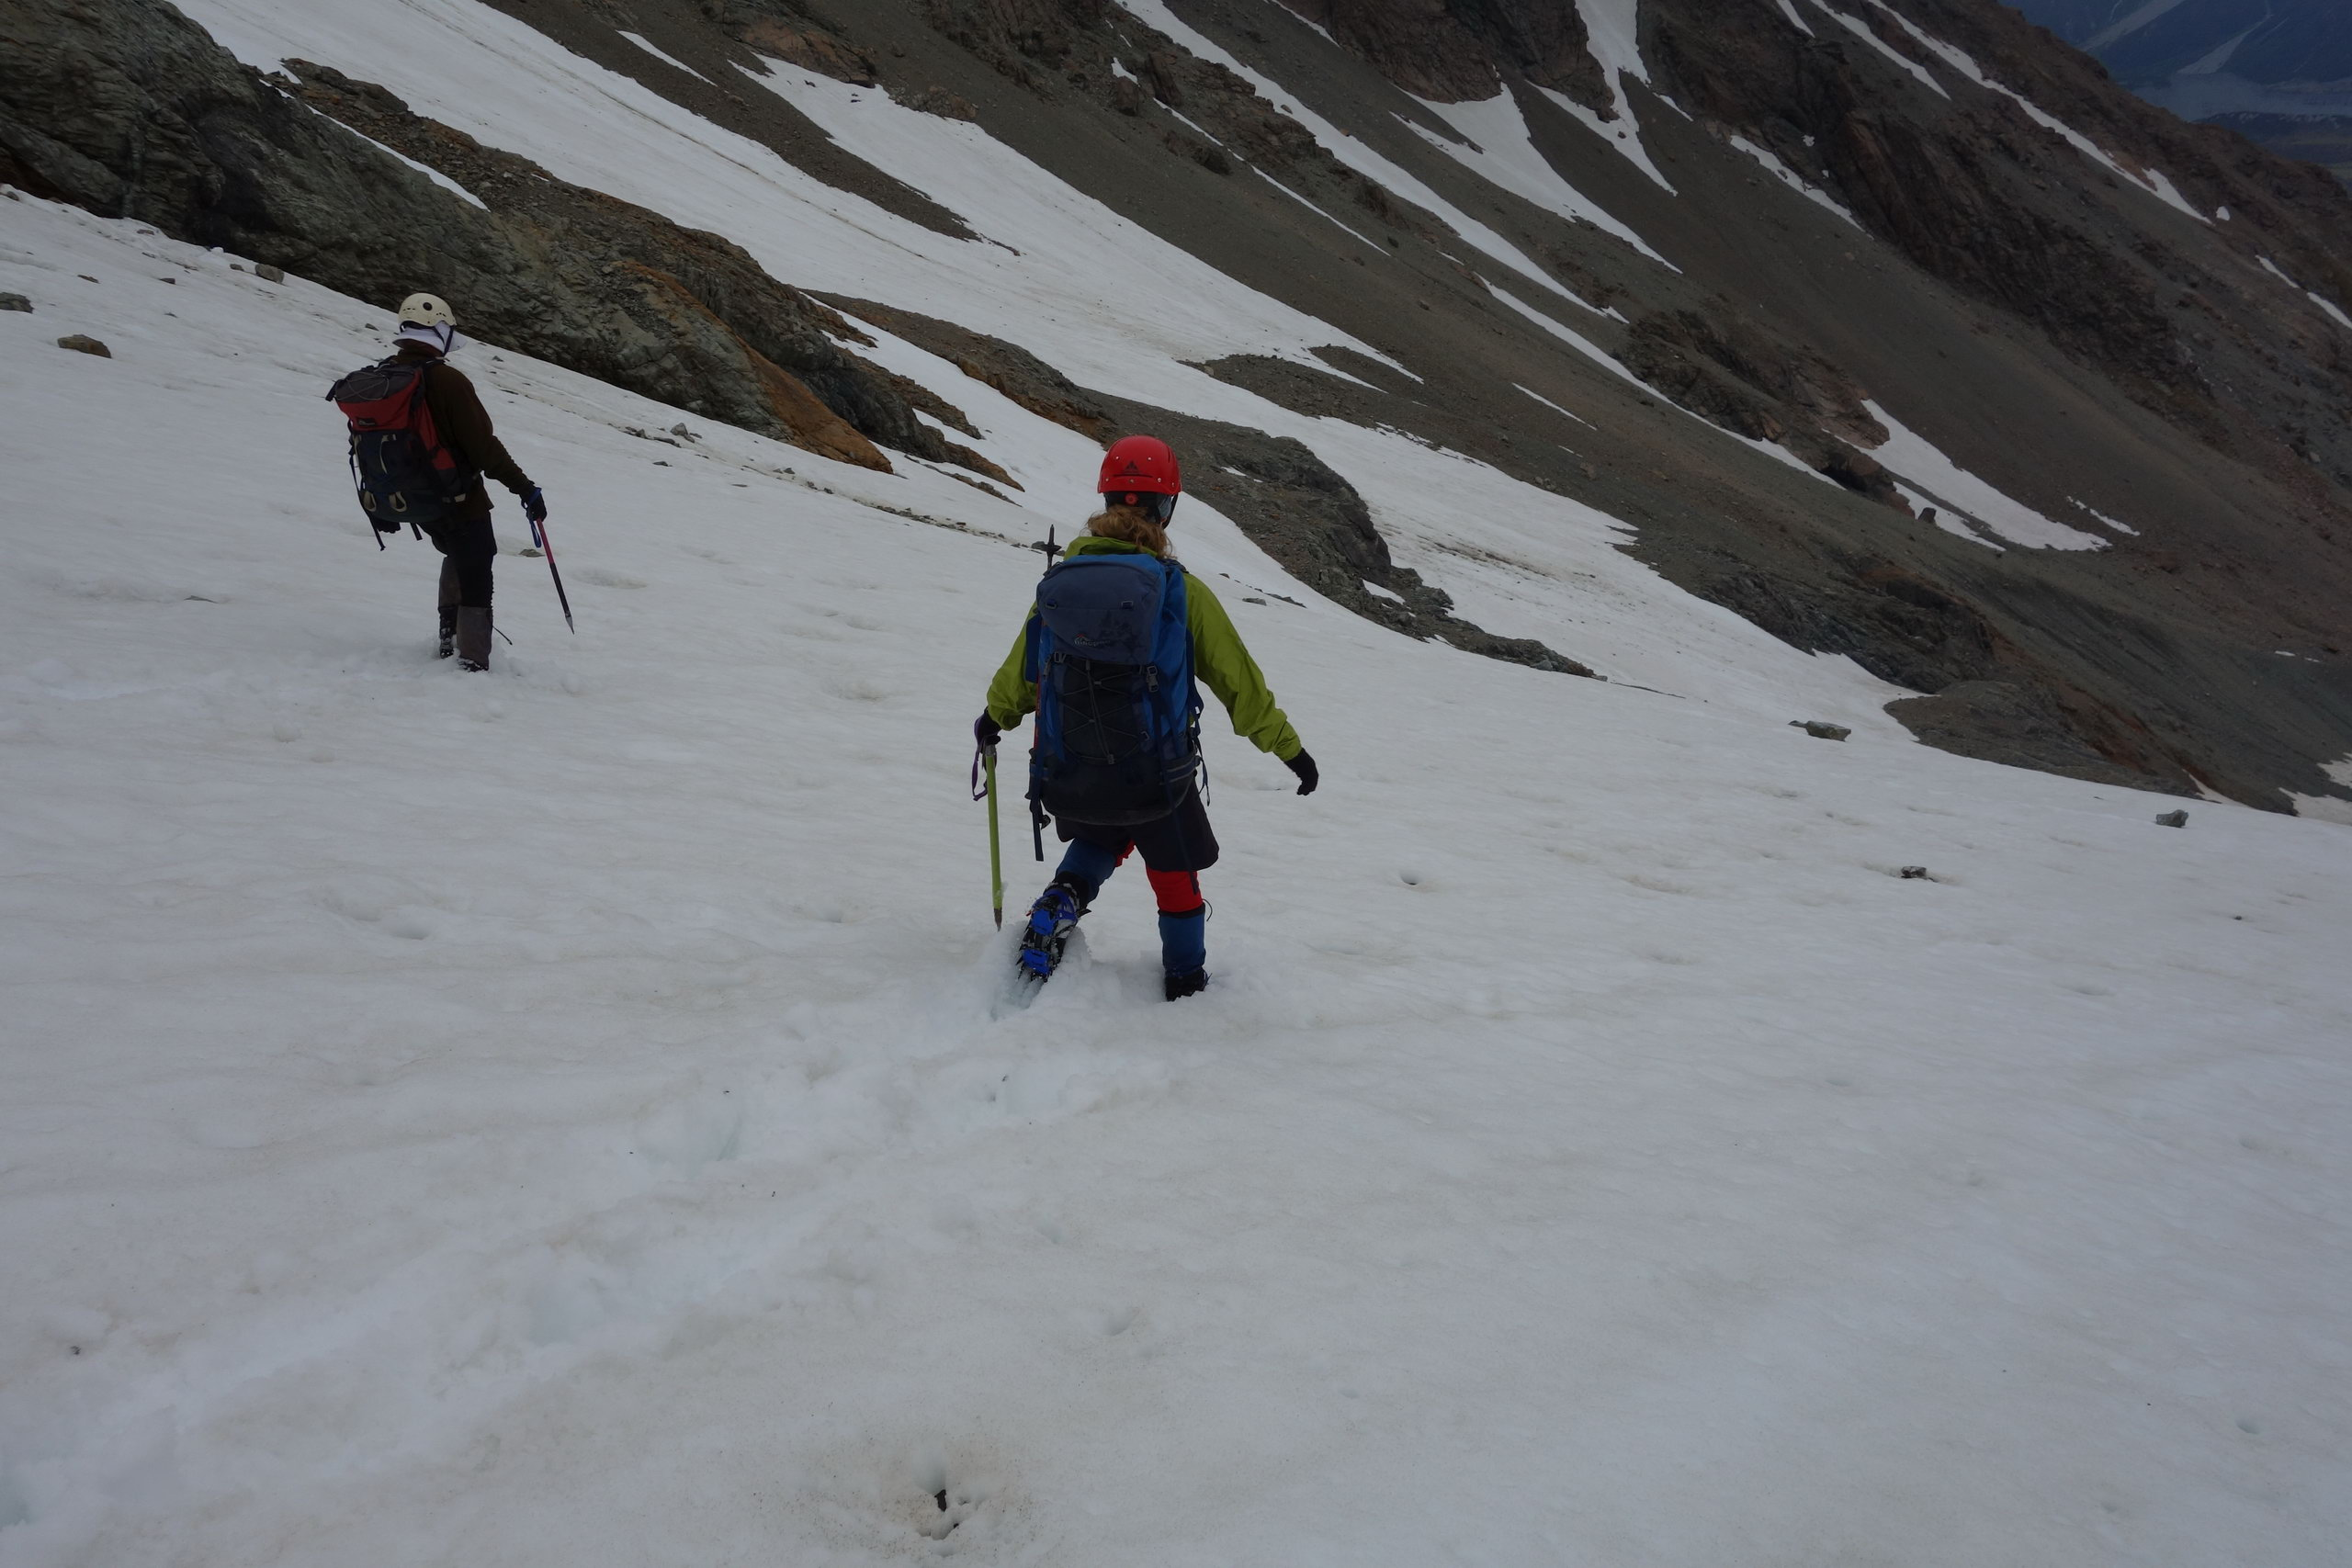 Jeremy and Gina descending (Ball Pass Dec 2013)